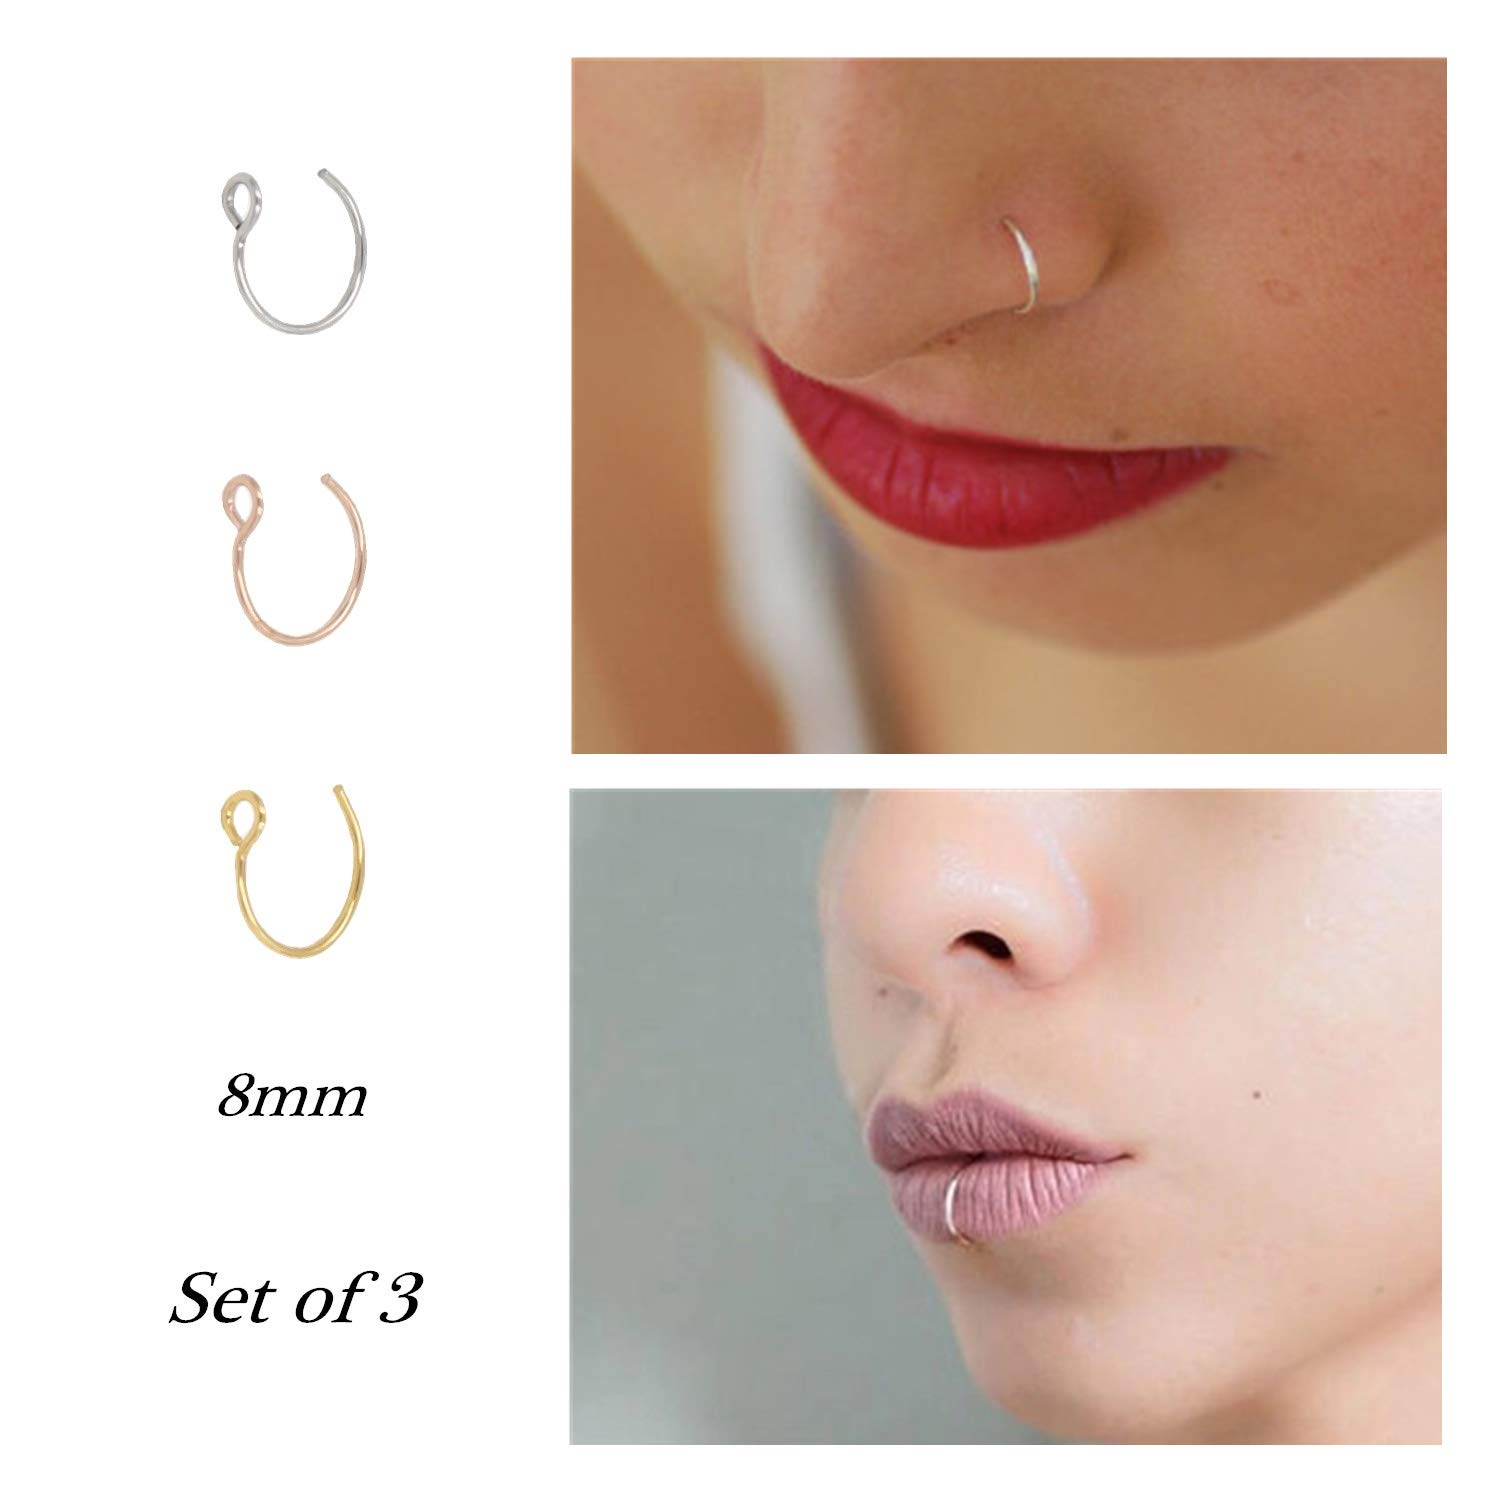 Fake Nose Ring Hoop Nose Rings Set Nose Piercing Lip Nose Rings Jewelry for Women Men Girl Gold,Rose Gold,Silver Pamido B07FK9LSPT_US